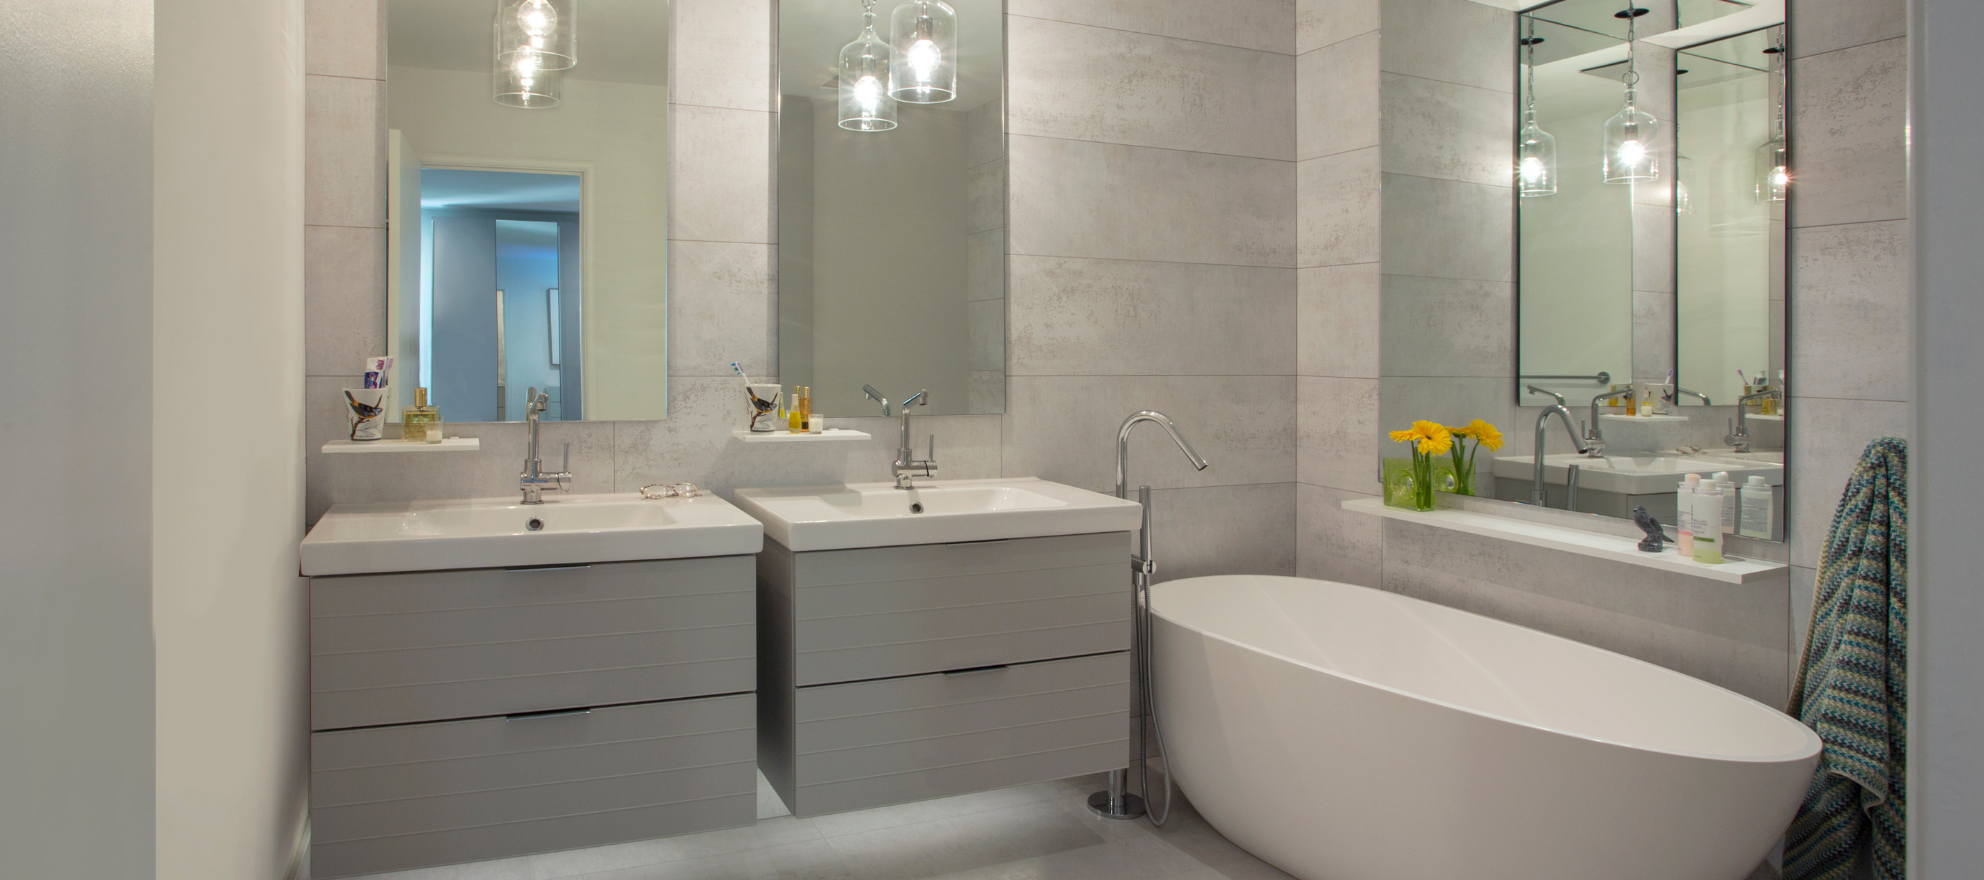 Bathroom Trends Tubs Are Oiut New Faucets Are In Inman